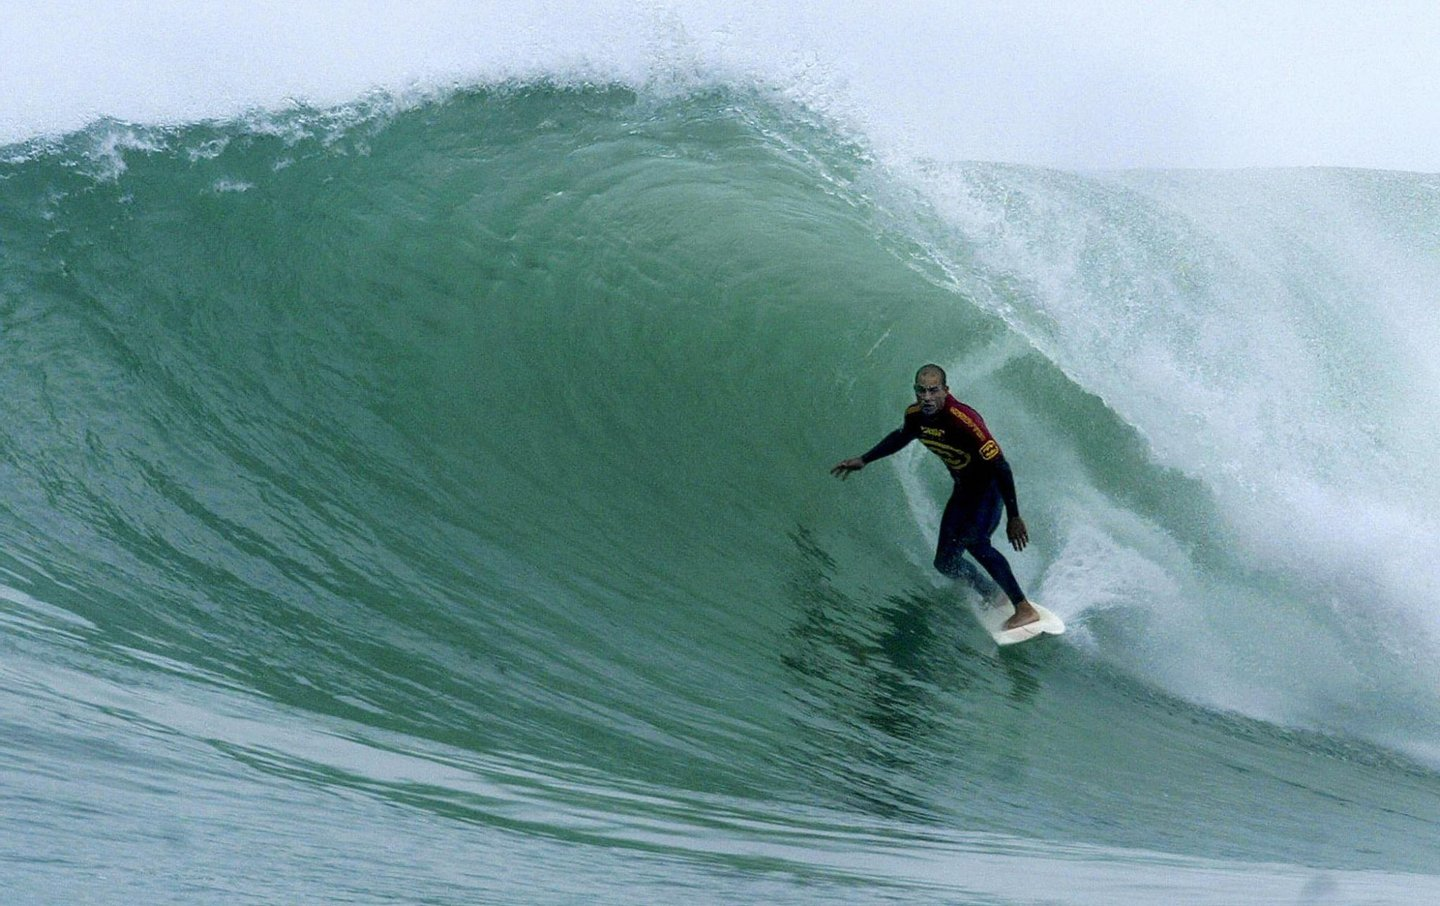 Kelly Slater of the US rides a wave in round three of the Billabong Pro at Jeffreys Bay in South Africa, 20 July 2003. Slater dominated his heat against Lee Winkler of Australia posting a near perfect 19.50 (out of 20 points) heat tally, the highest of the event to date and his best single heat score of the year, to advance to round four.   AFP PHOTO/Grant ELLIS/Tostee.com/HO  (Photo credit should read GRANT ELLIS/AFP/Getty Images)